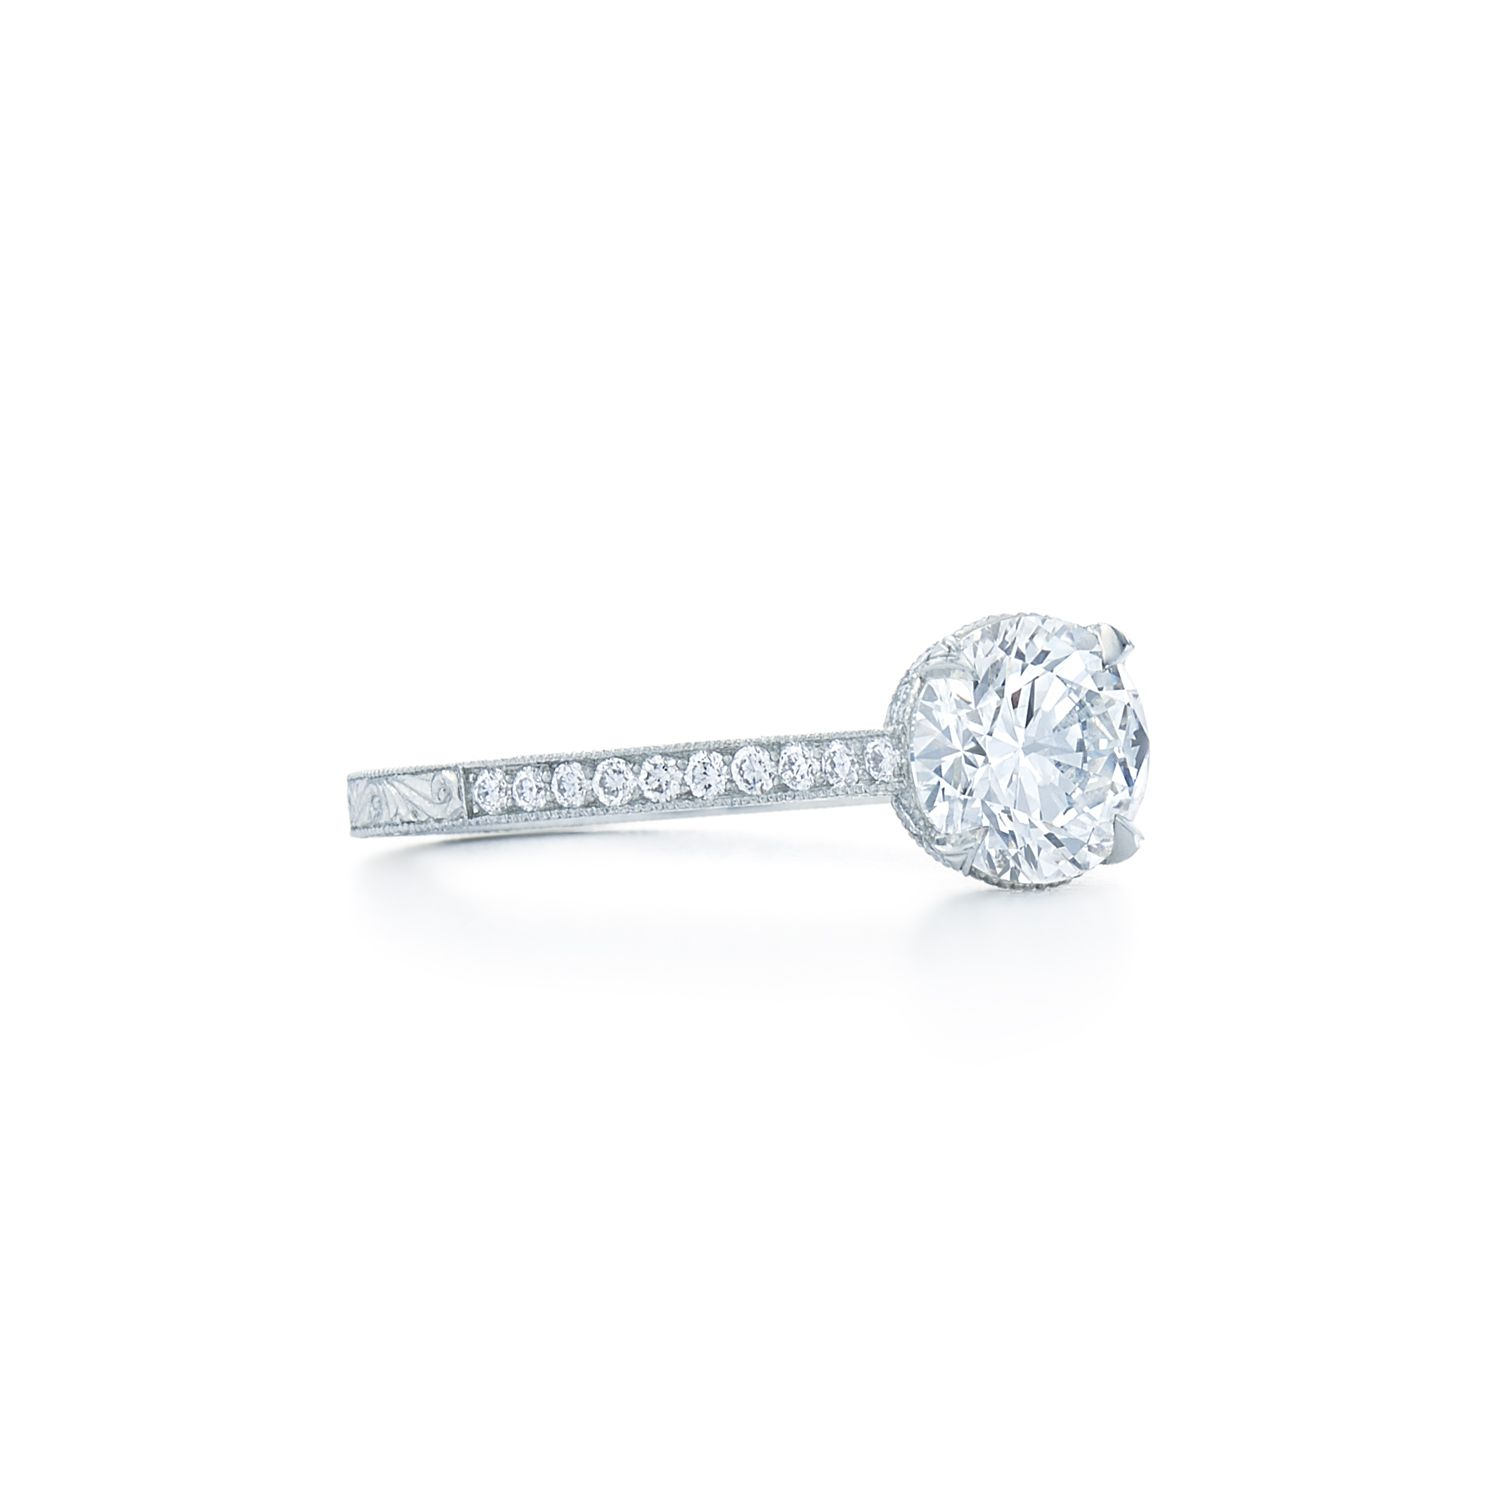 Round brilliant diamond engagement ring round brilliant diamond